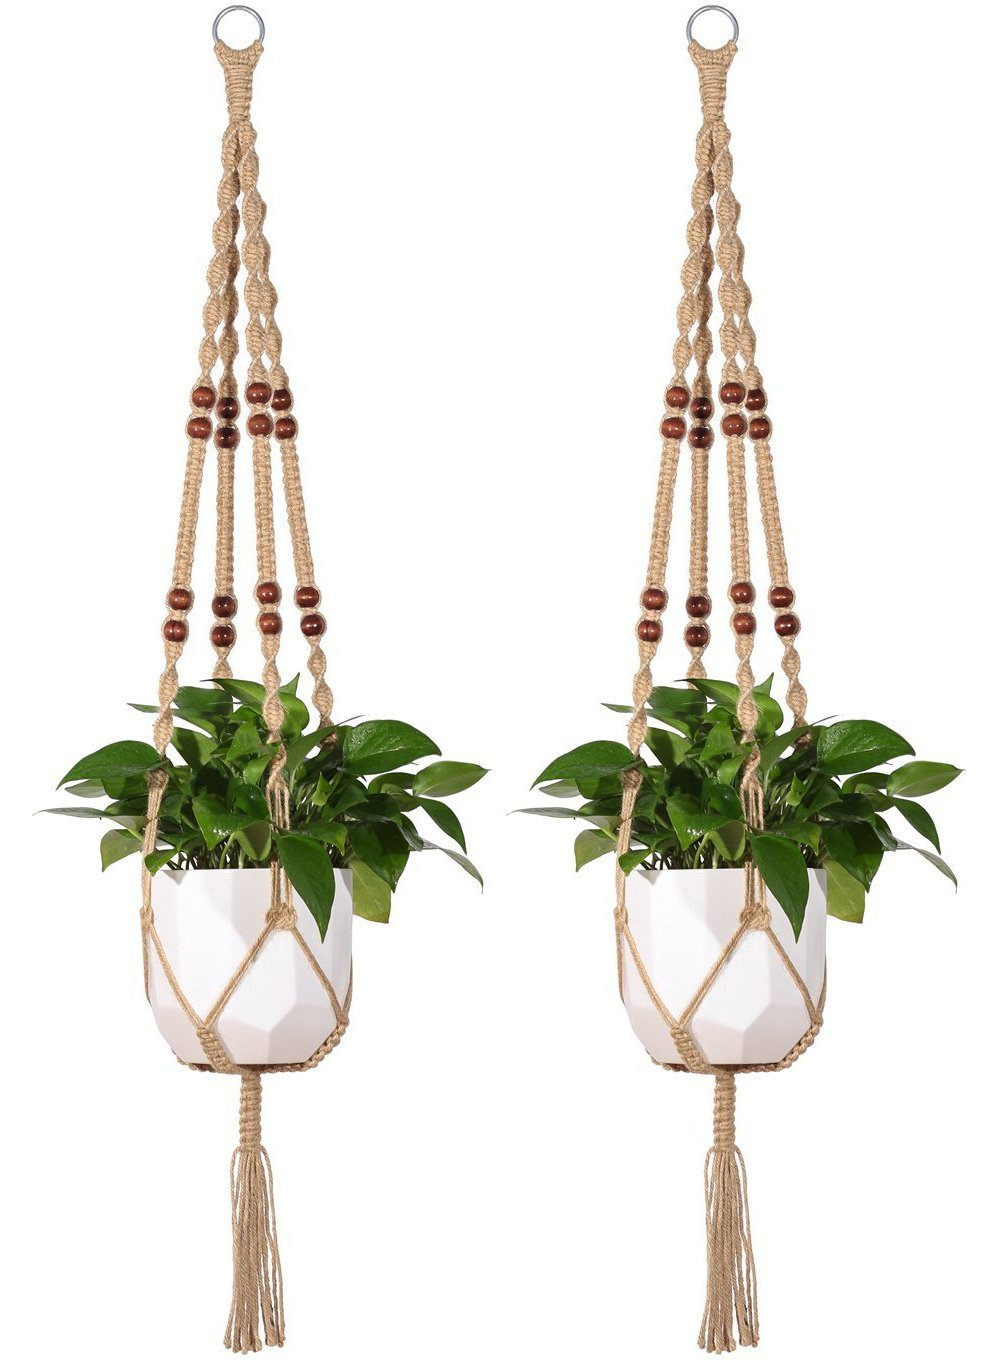 Mkono 2 Pcs Macrame Plant Hanger Indoor Outdoor Hanging Planter Basket Jute Rope with Beads 4 Legs 48 Inch